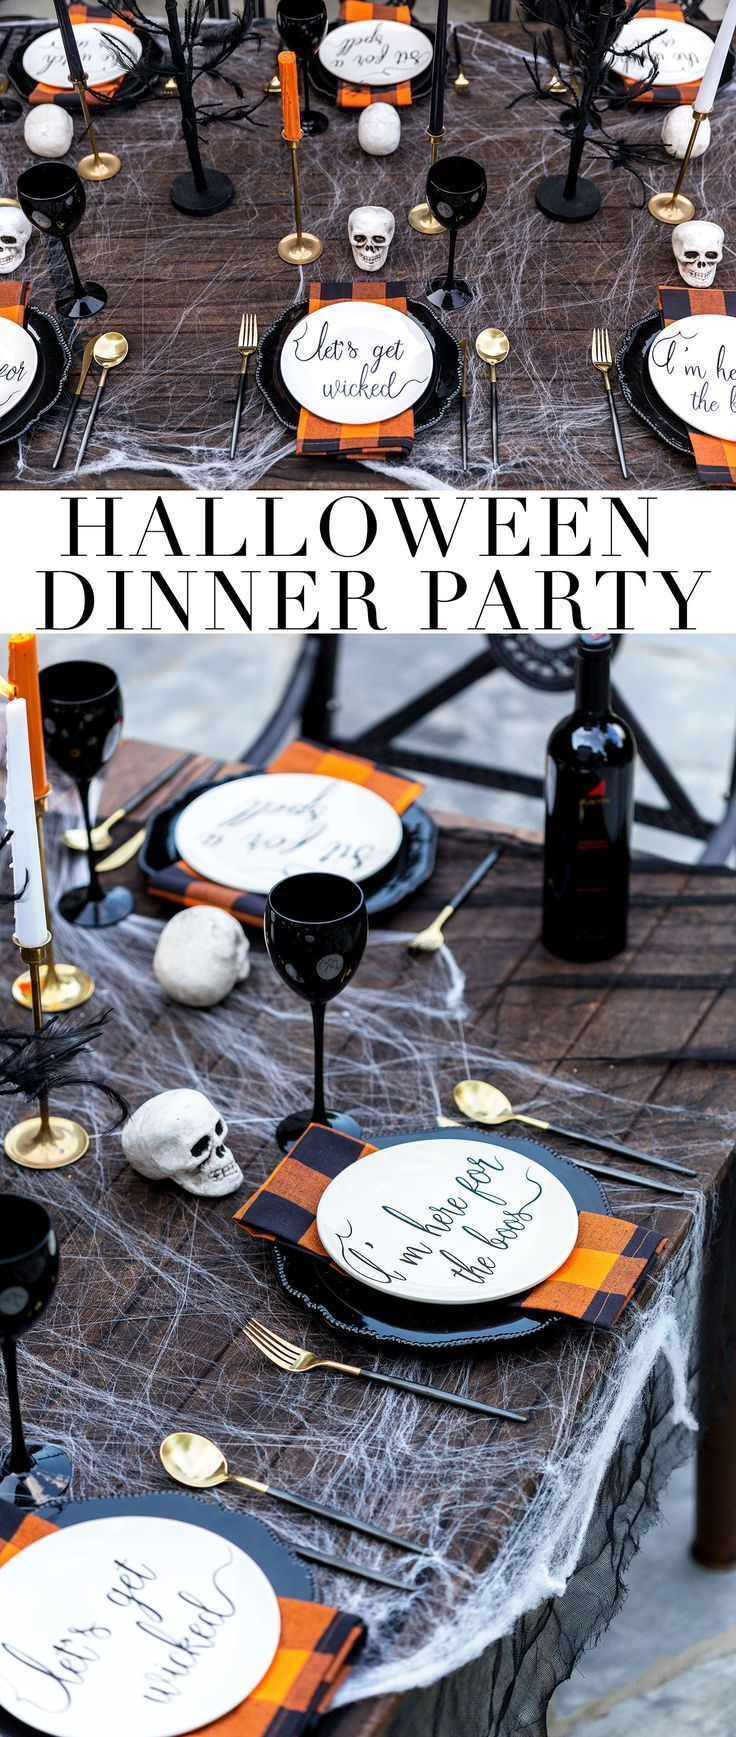 Adult Halloween Party Decorations & Halloween Menu Ideas